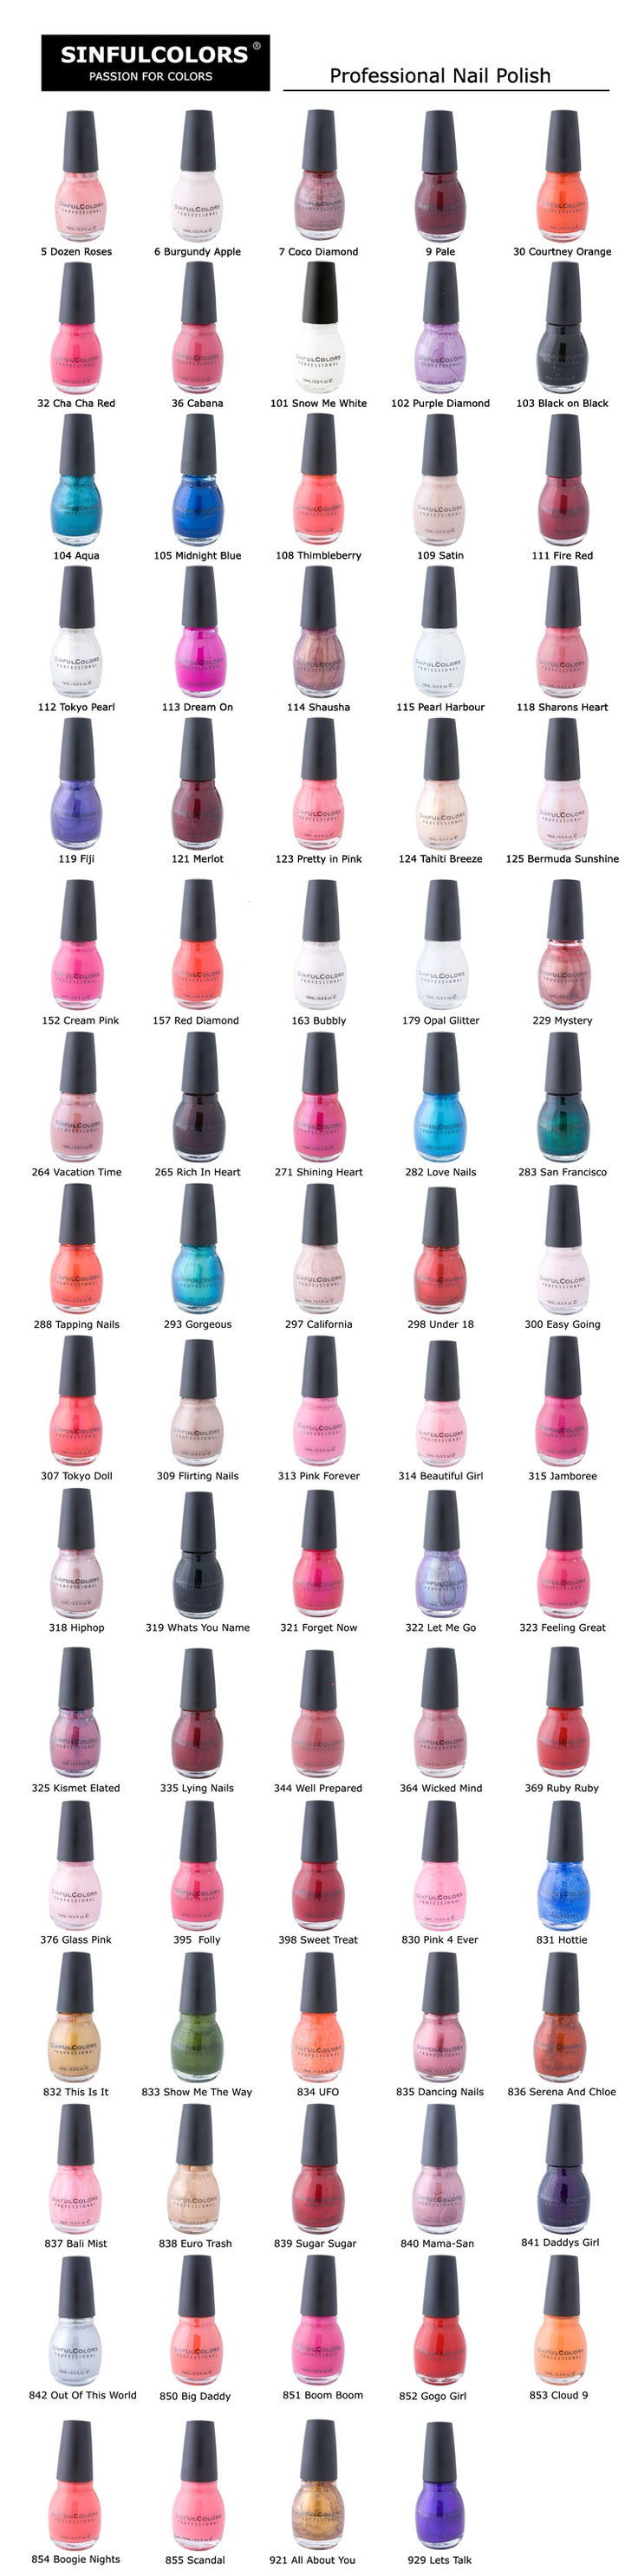 Sinful Colors Color Chart Sinful Colors Nail Polish Sinful Nail Polish Nail Polish Brands